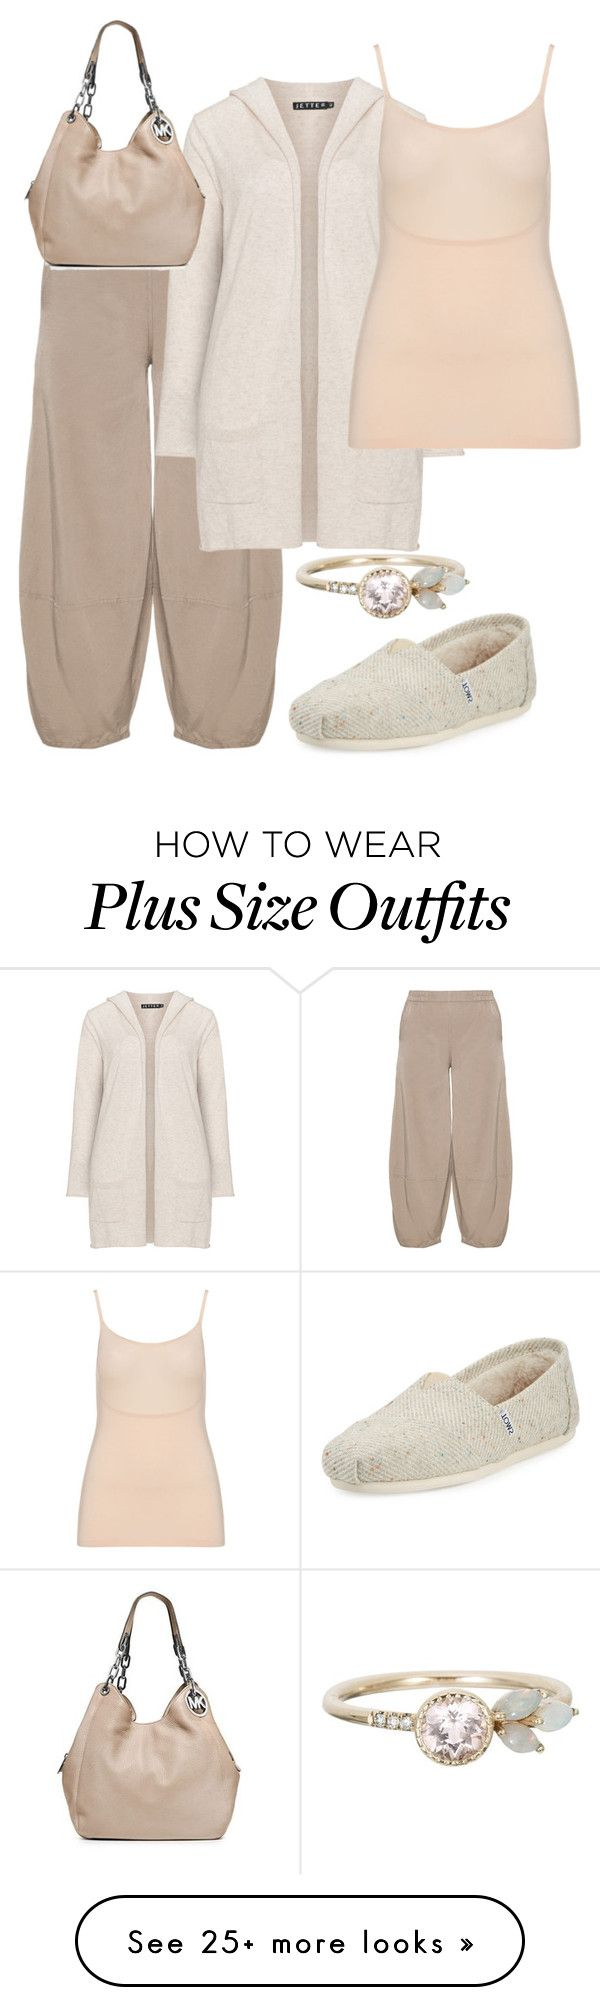 """""""plus size sherry"""" by aleger-1 on Polyvore featuring Kekoo, Jette, TOMS, SPANX and MICHAEL Michael Kors"""